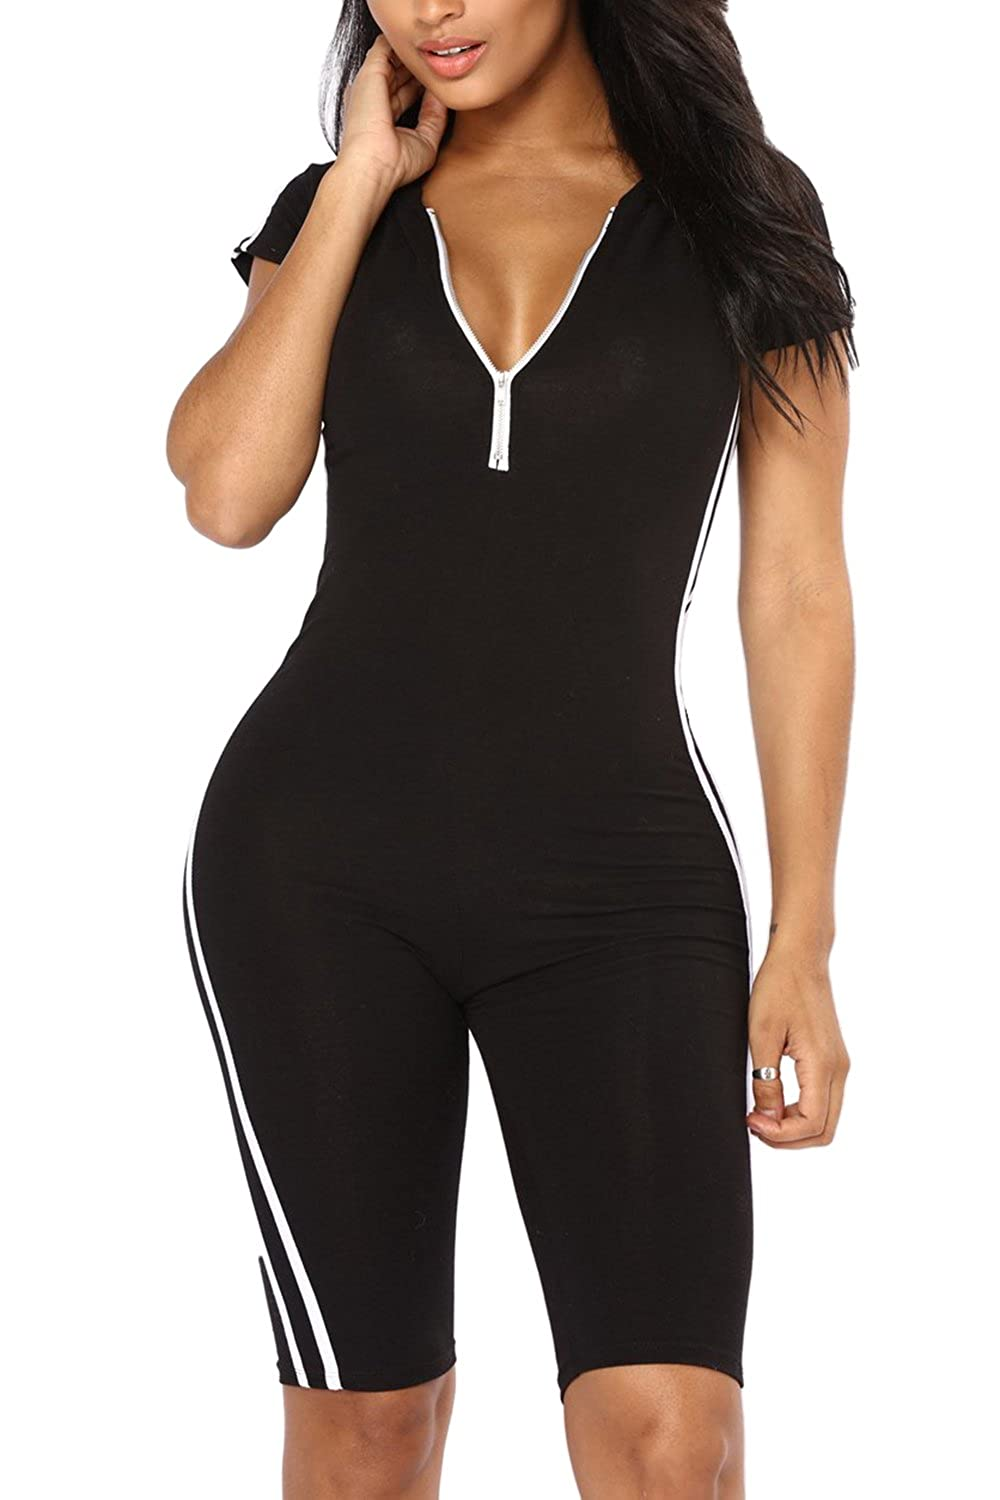 Pointtee Women's Short Sleeve Zip Up Active Hooded Top Striped Capris Bodycon Sporty Romper by Pointtee